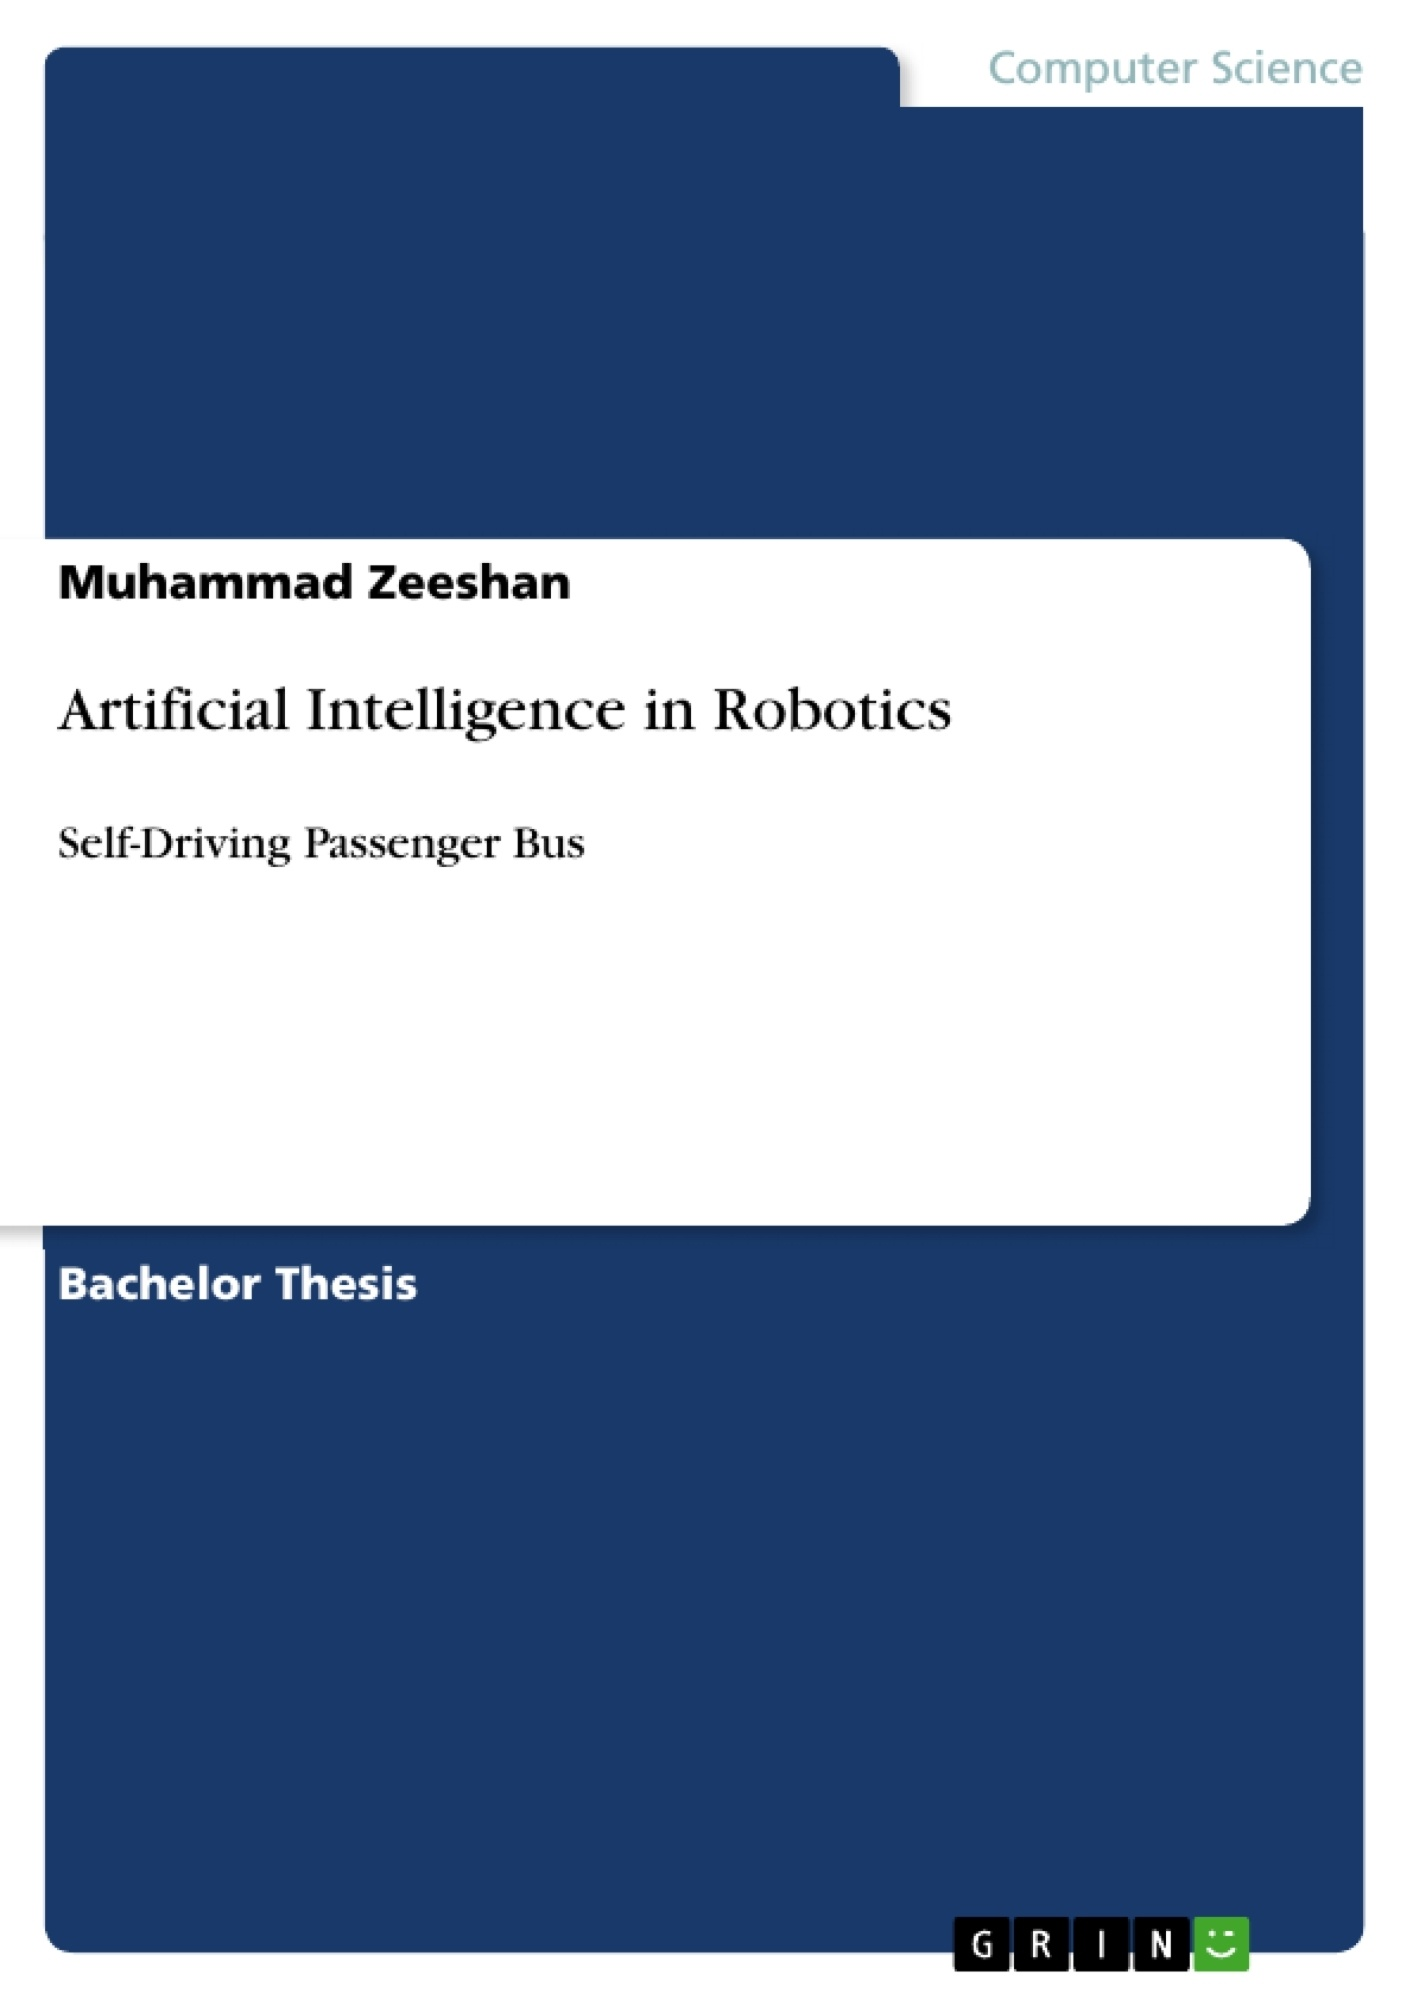 Title: Artificial Intelligence in Robotics